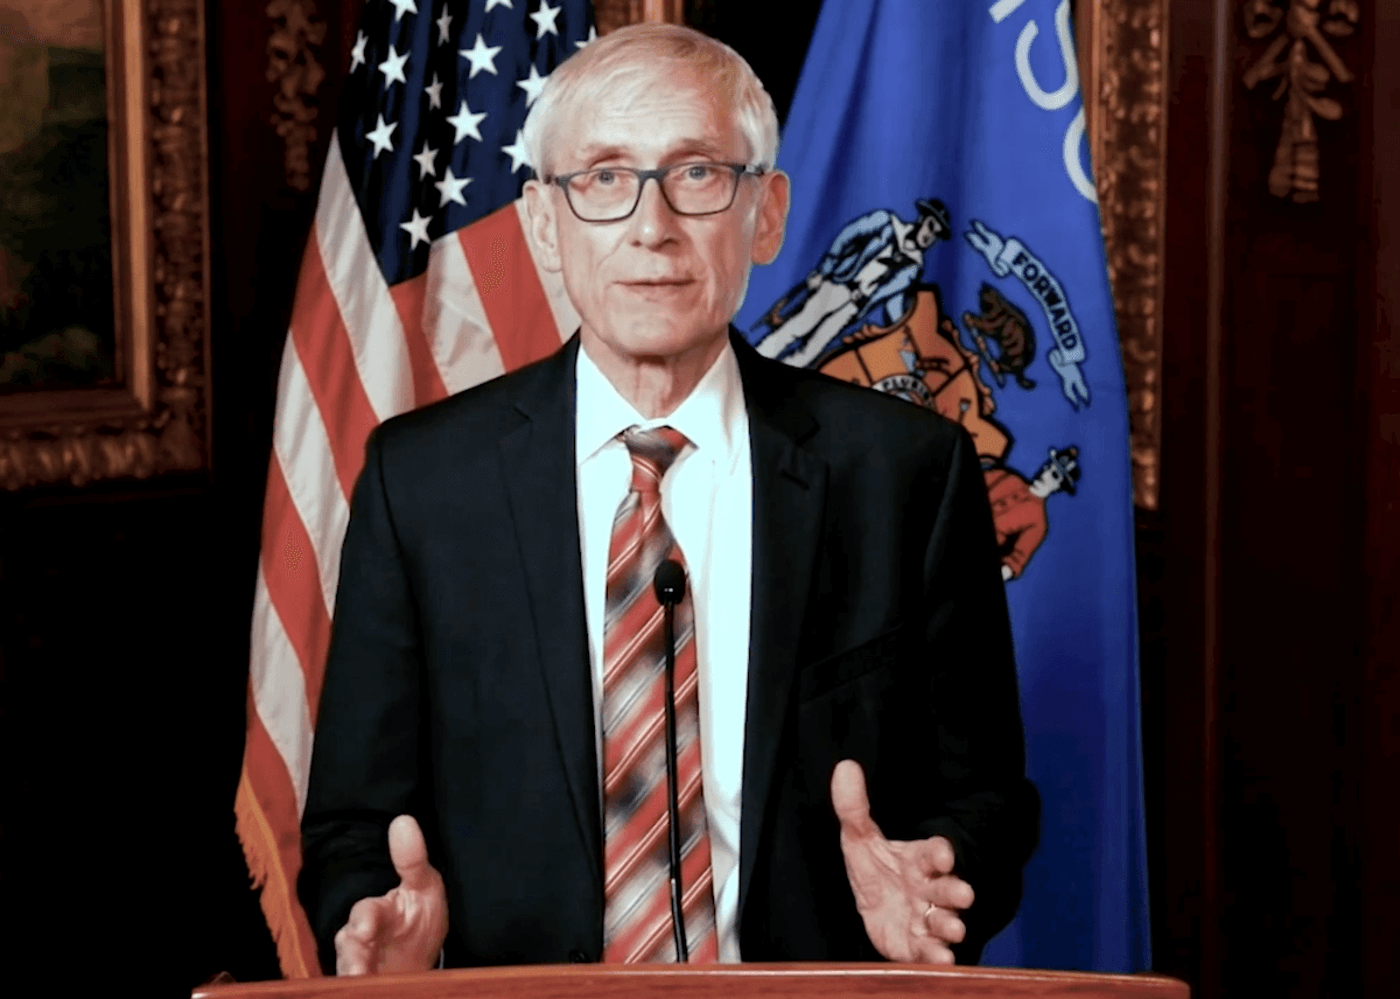 In a video released by the governor's office, Gov. Tony Evers responds to the Legislature's effort to kill his most recent statewide face mask safeguard by issuing a new one.